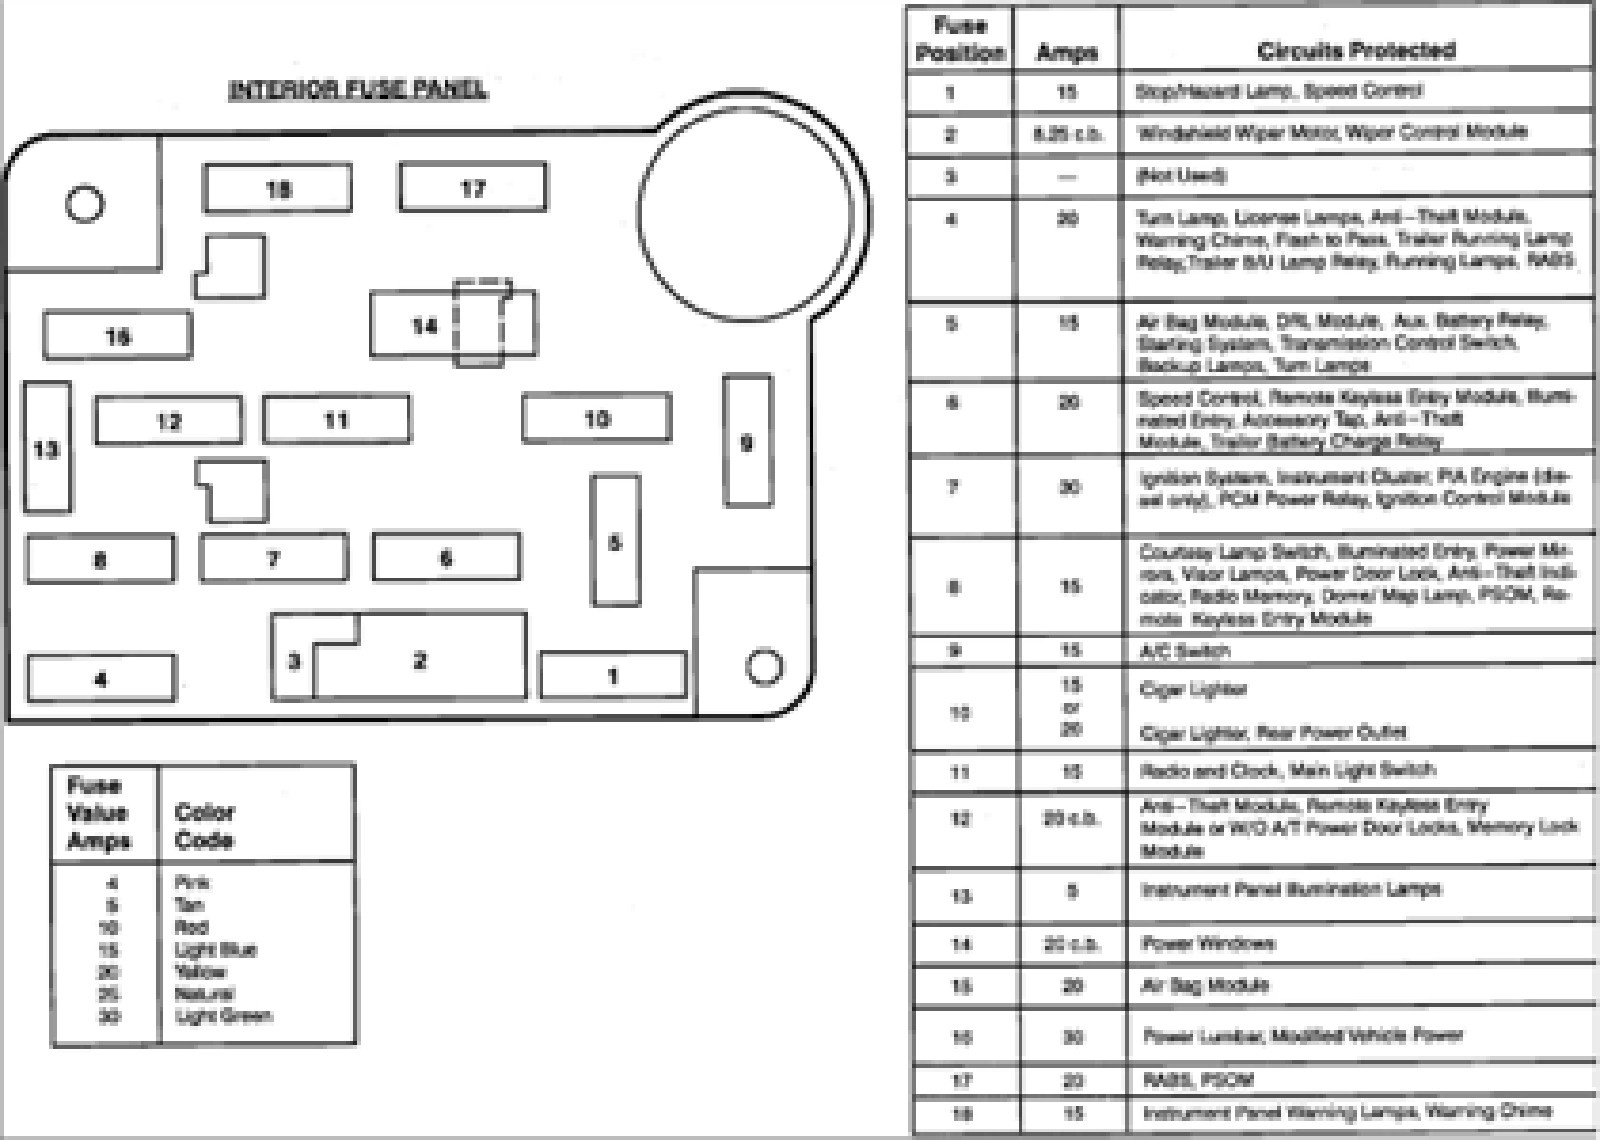 1994 f150 fuse panel diagram wiring diagrams rh boltsoft net 1996 F150 Fuse Box Diagram 2001 F150 Fuse Box Diagram